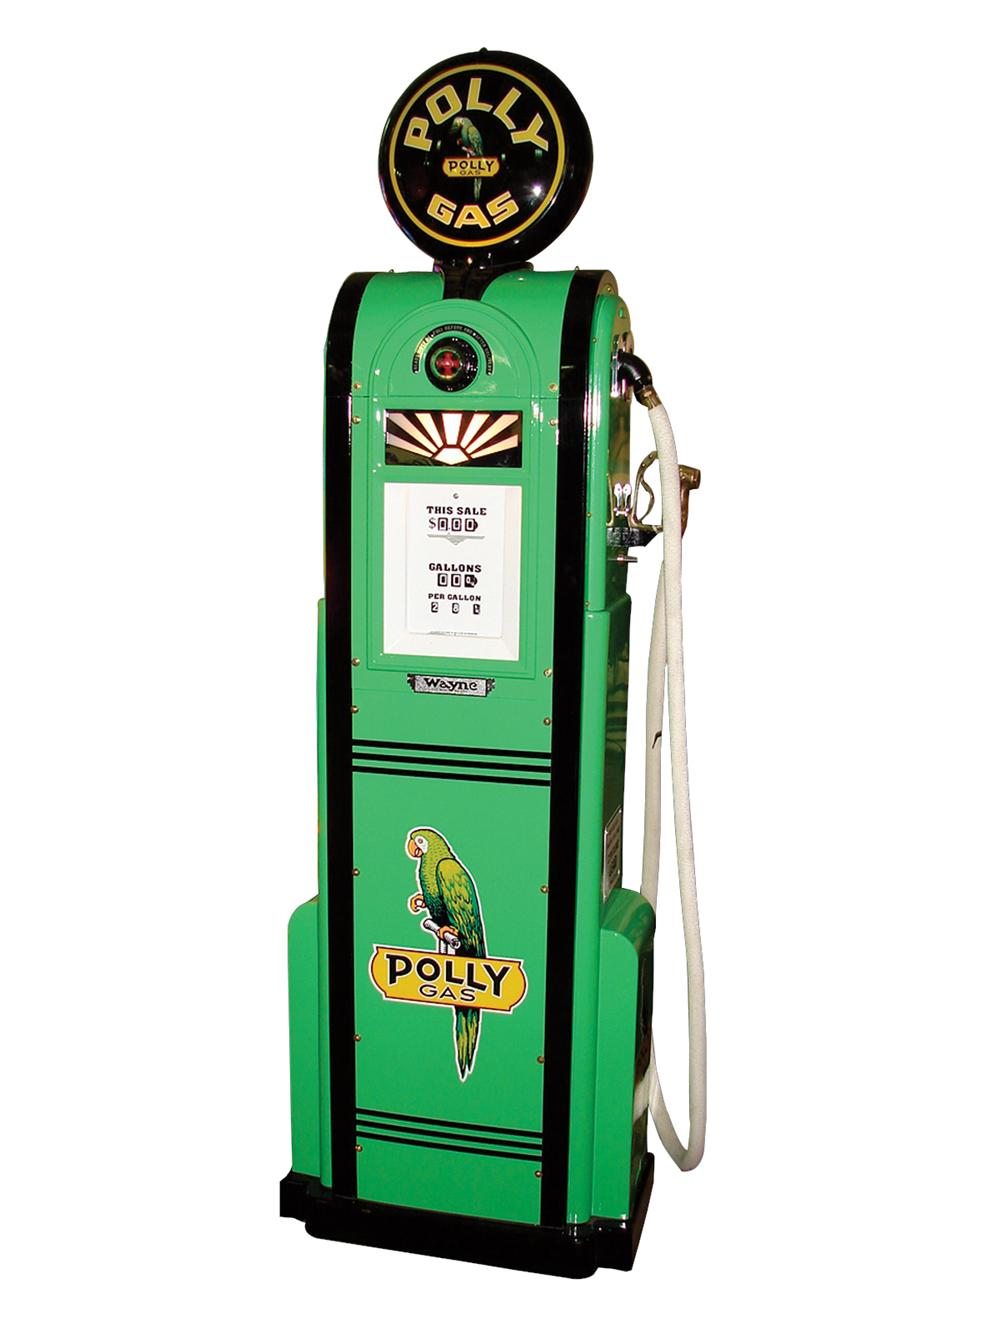 Stunning 1935 Wayne #60 Polly Gasoline filling station pump with art nouveau styling. - Front 3/4 - 79567